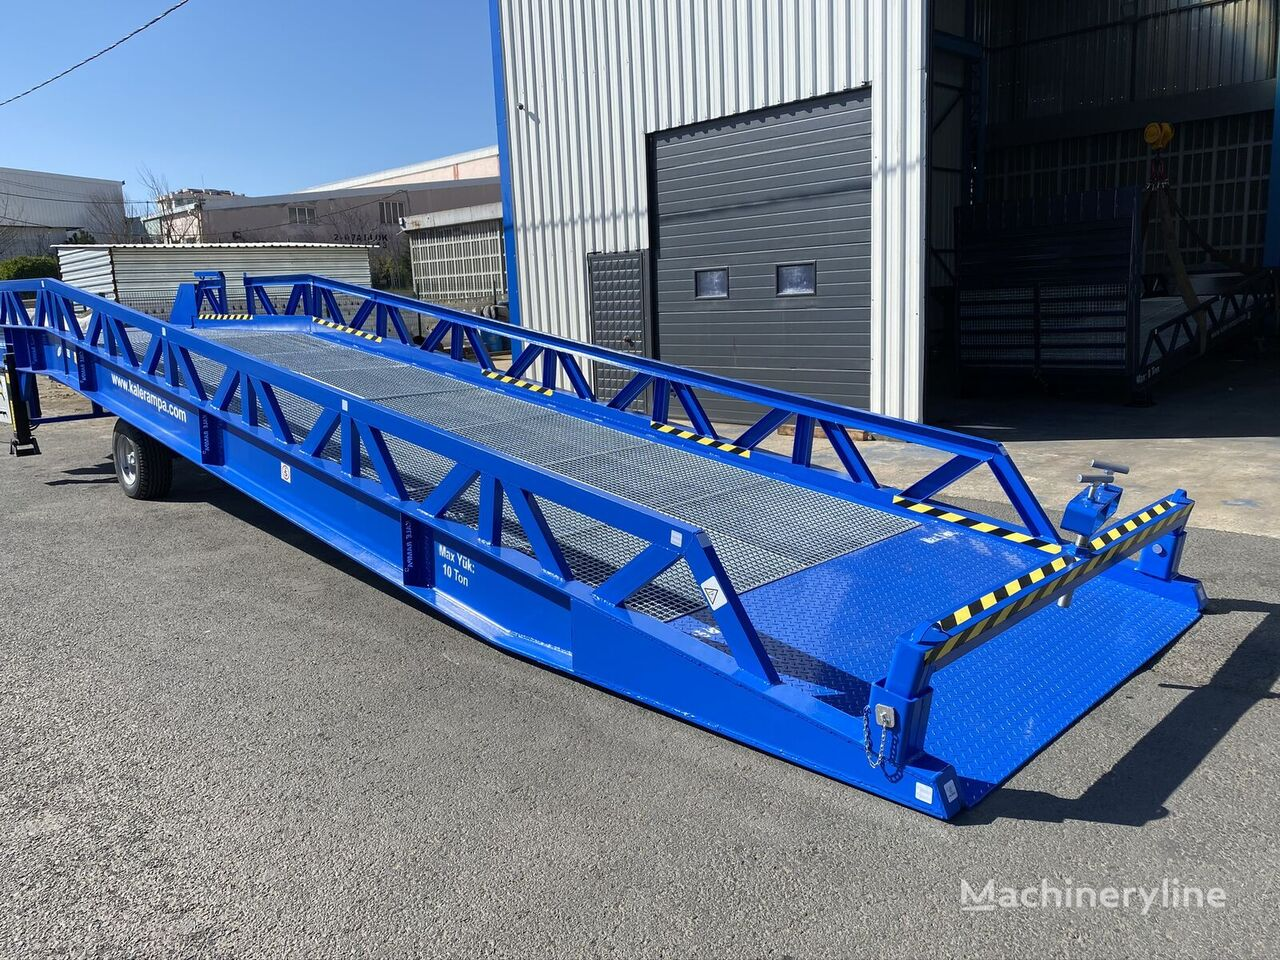 new KALE RAMPA MYR-DI-10 TONS loading dock ramp